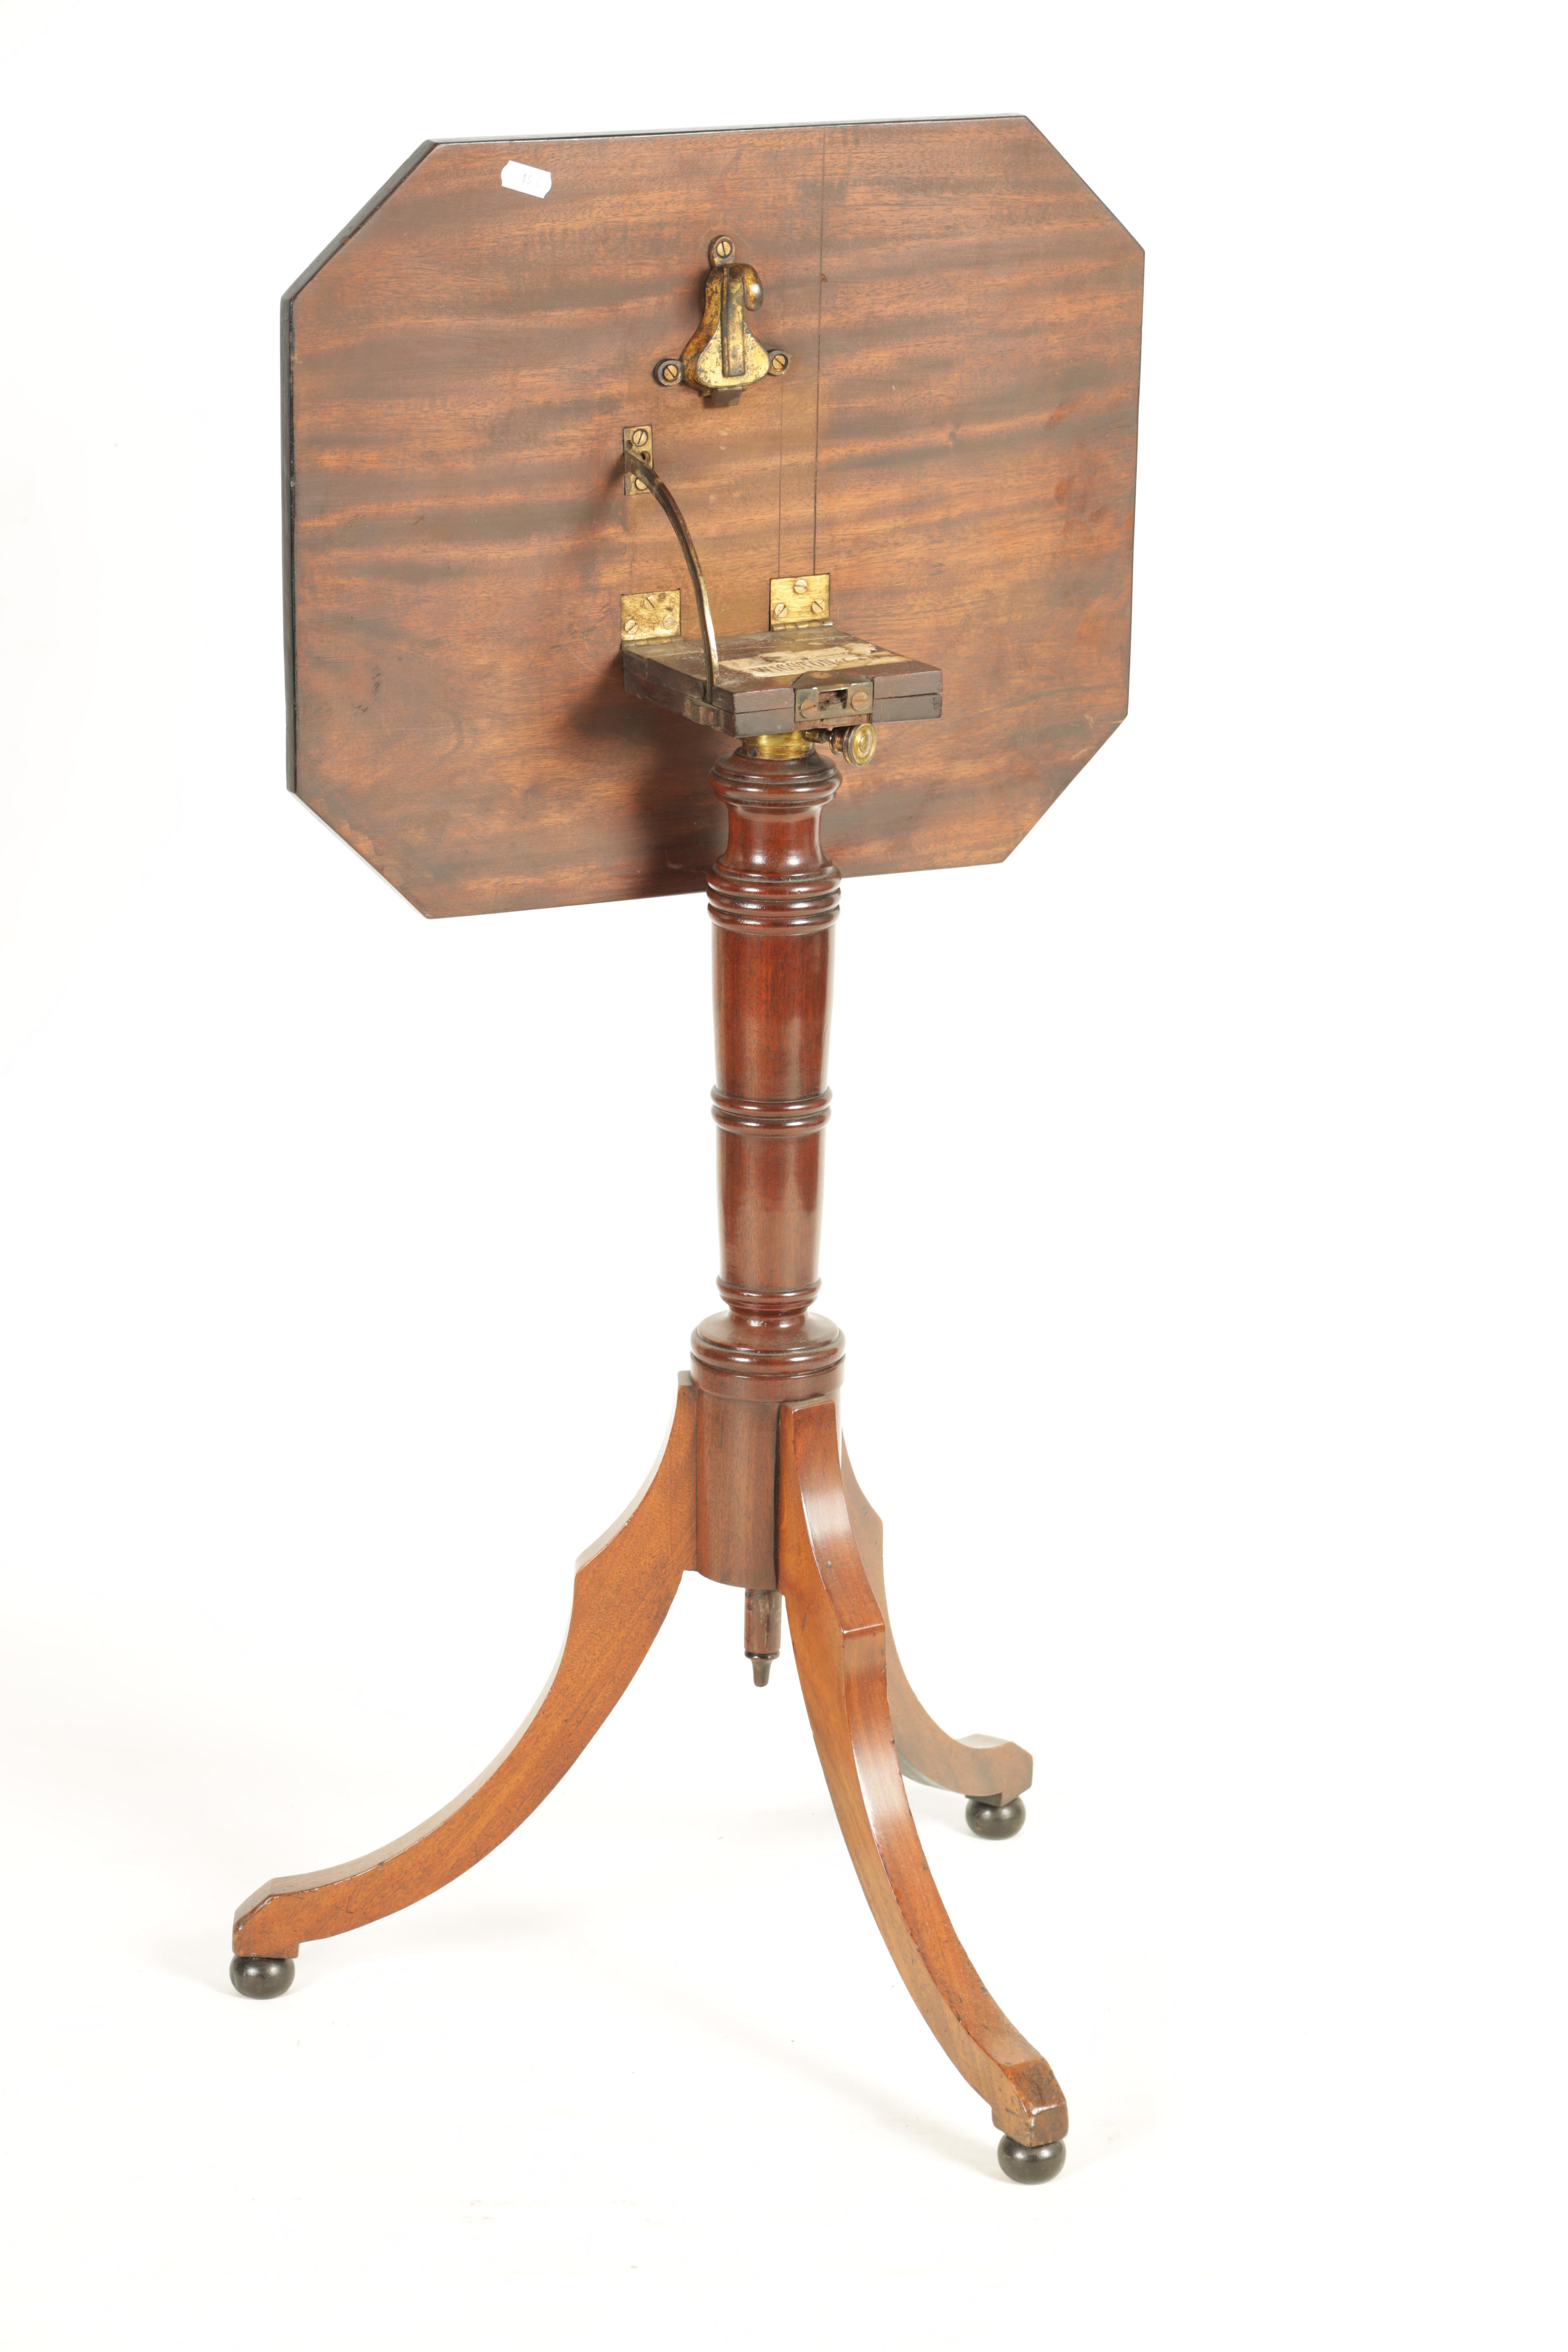 A REGENCY MAHOGANY ADJUSTABLE OCCASIONAL/READING TABLE with clipped corners and tilting top, - Image 6 of 9